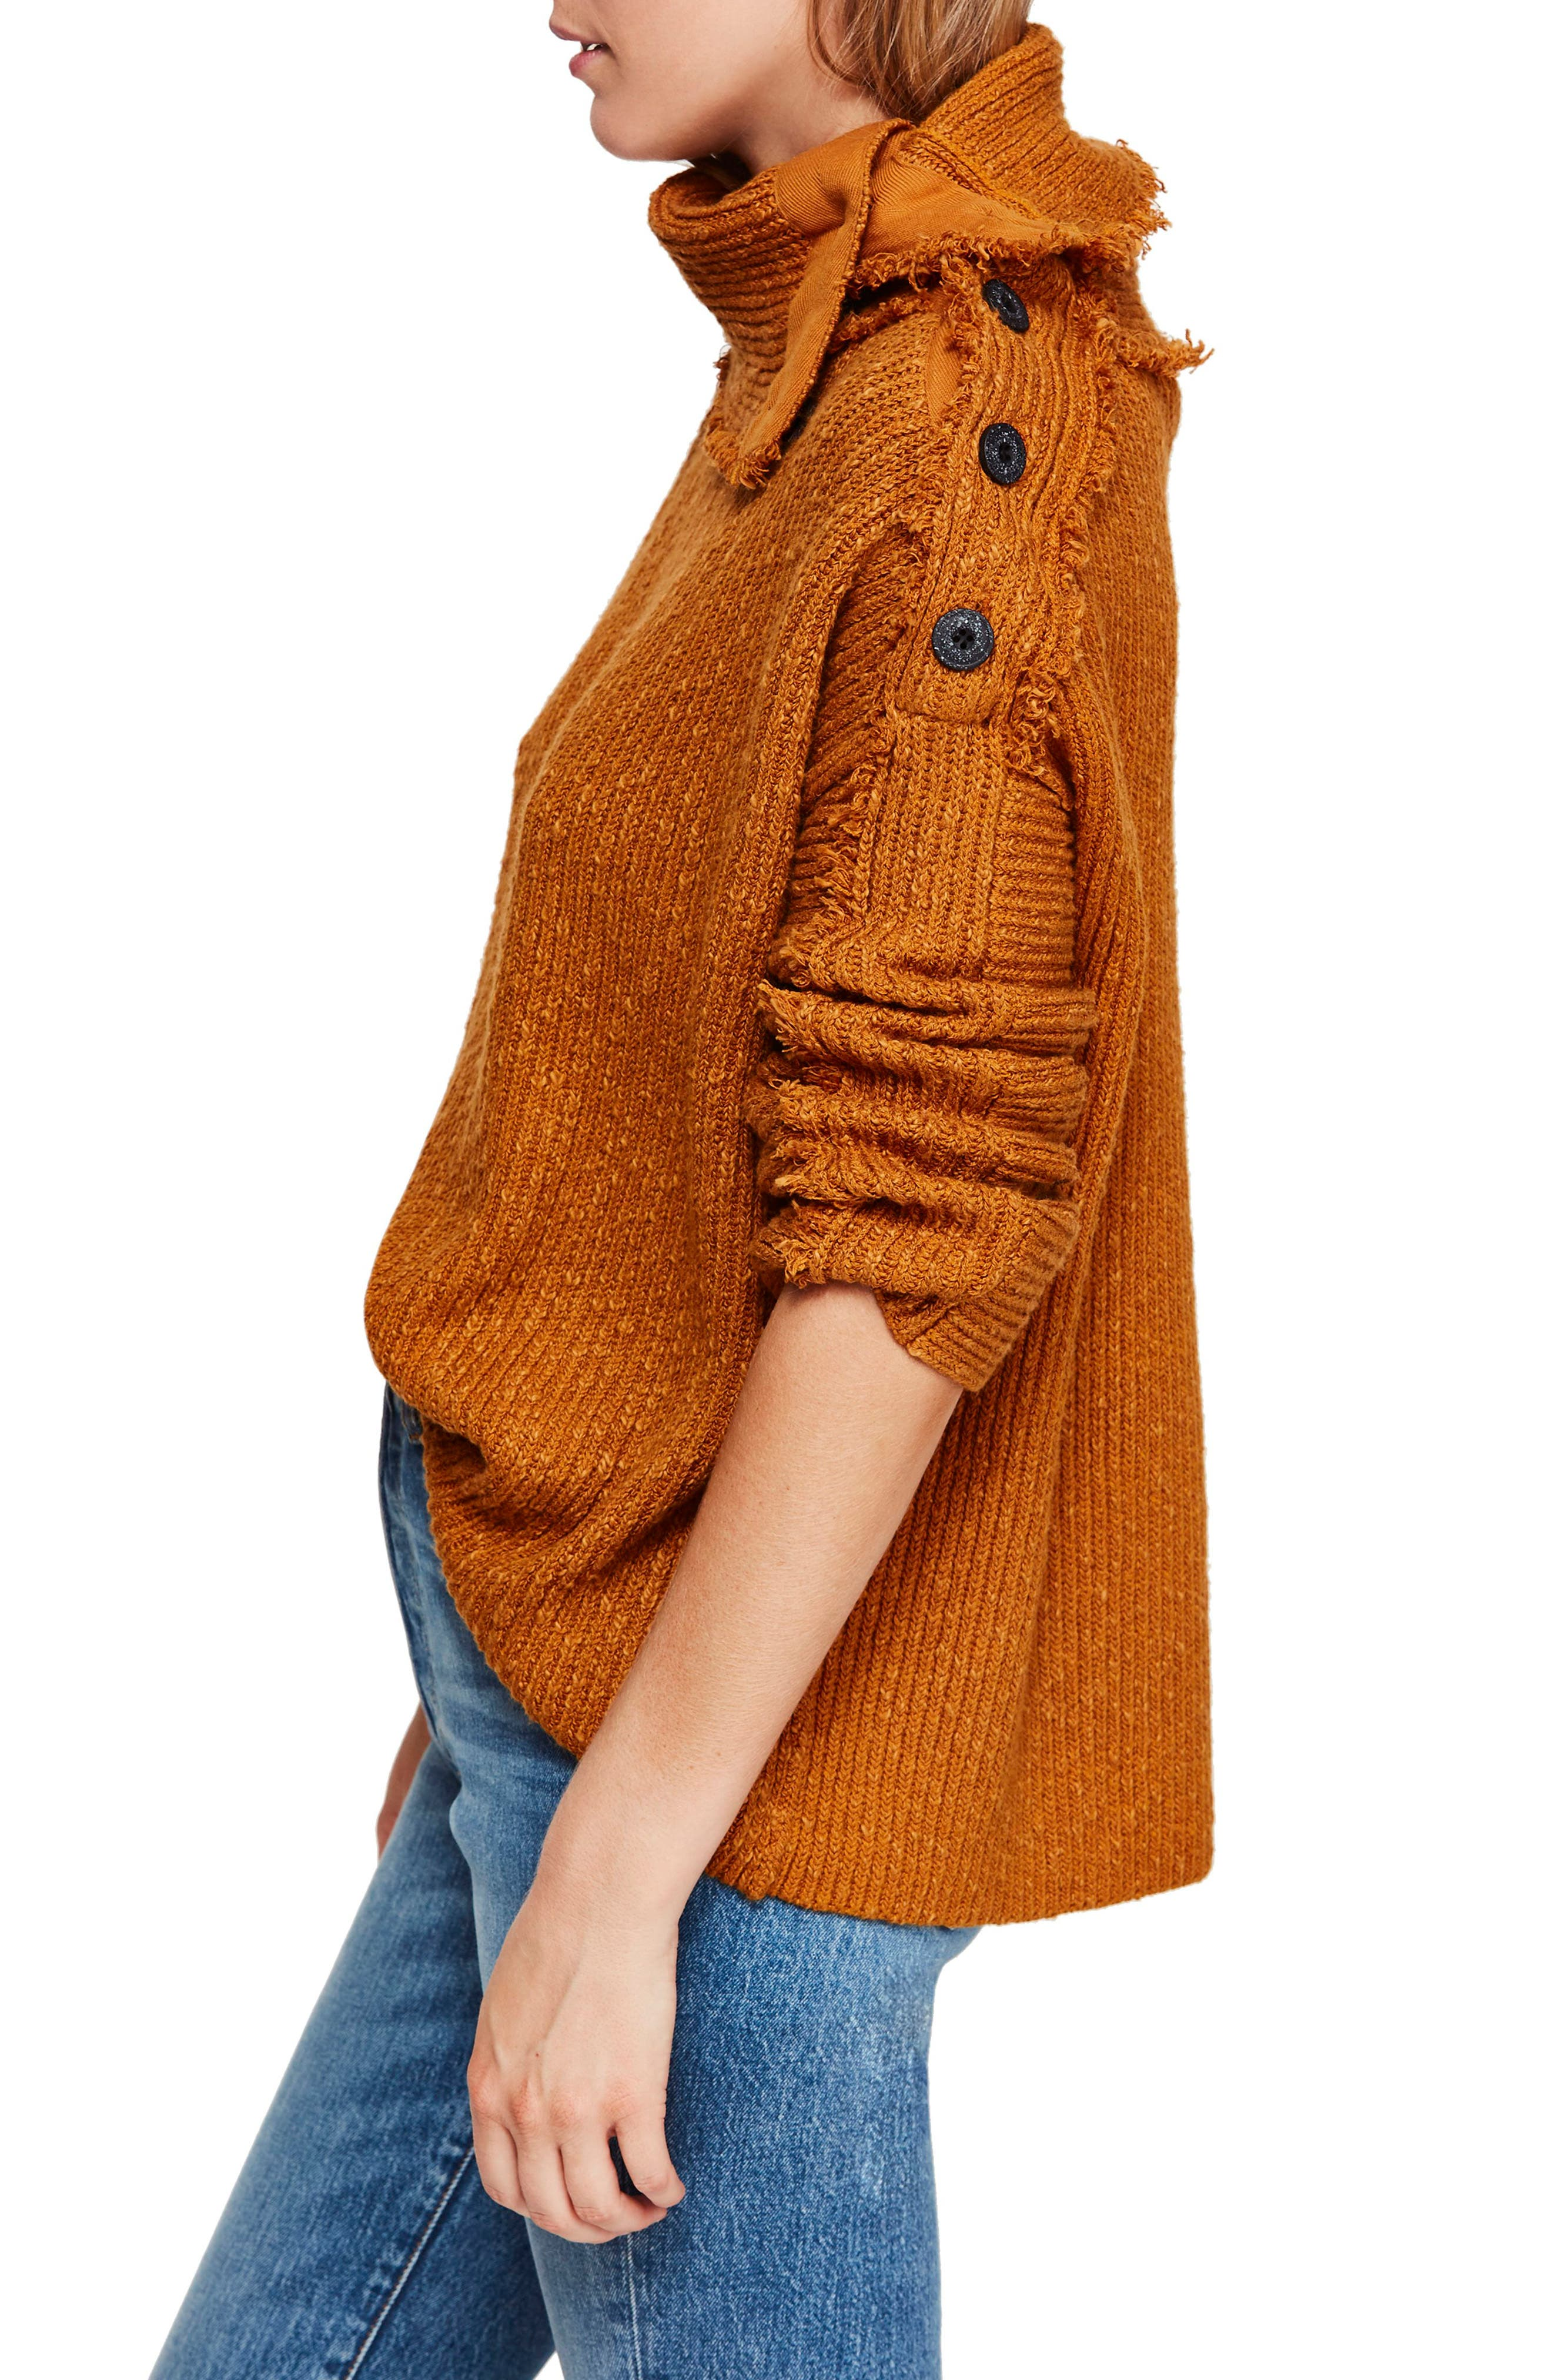 FREE PEOPLE, On My Side Turtleneck Sweater, Alternate thumbnail 3, color, 710